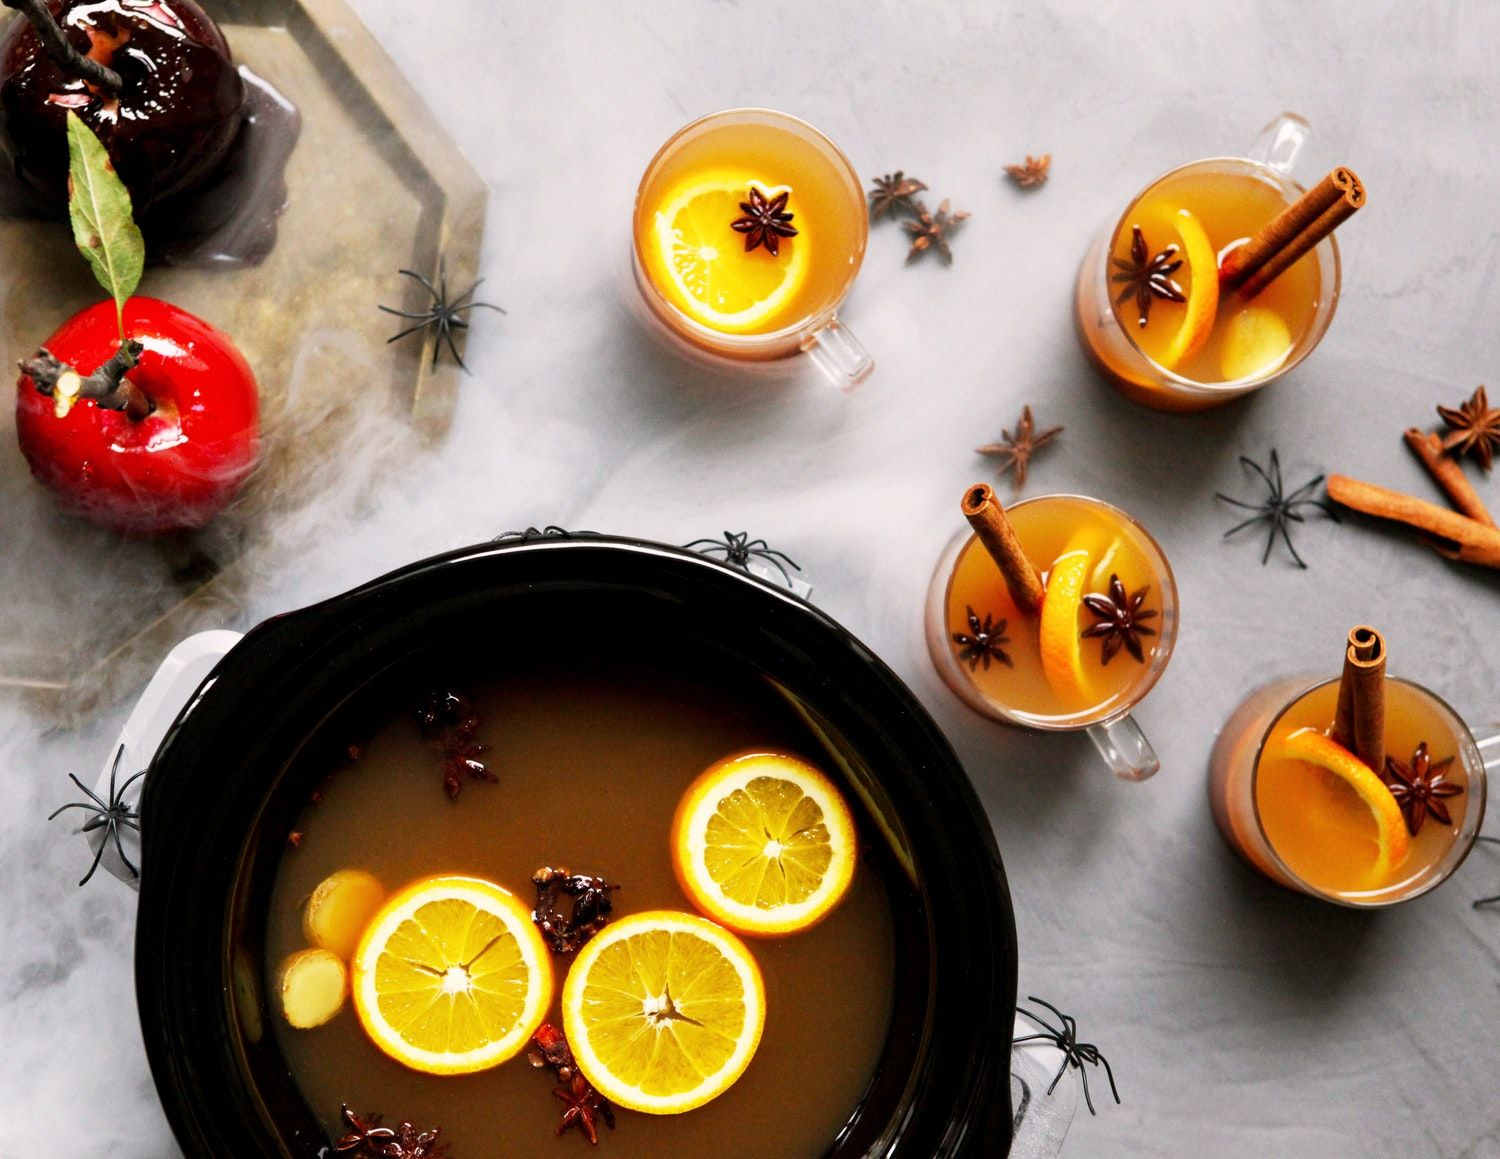 Recipe: Slow Cooker Spiked Mulled Cider